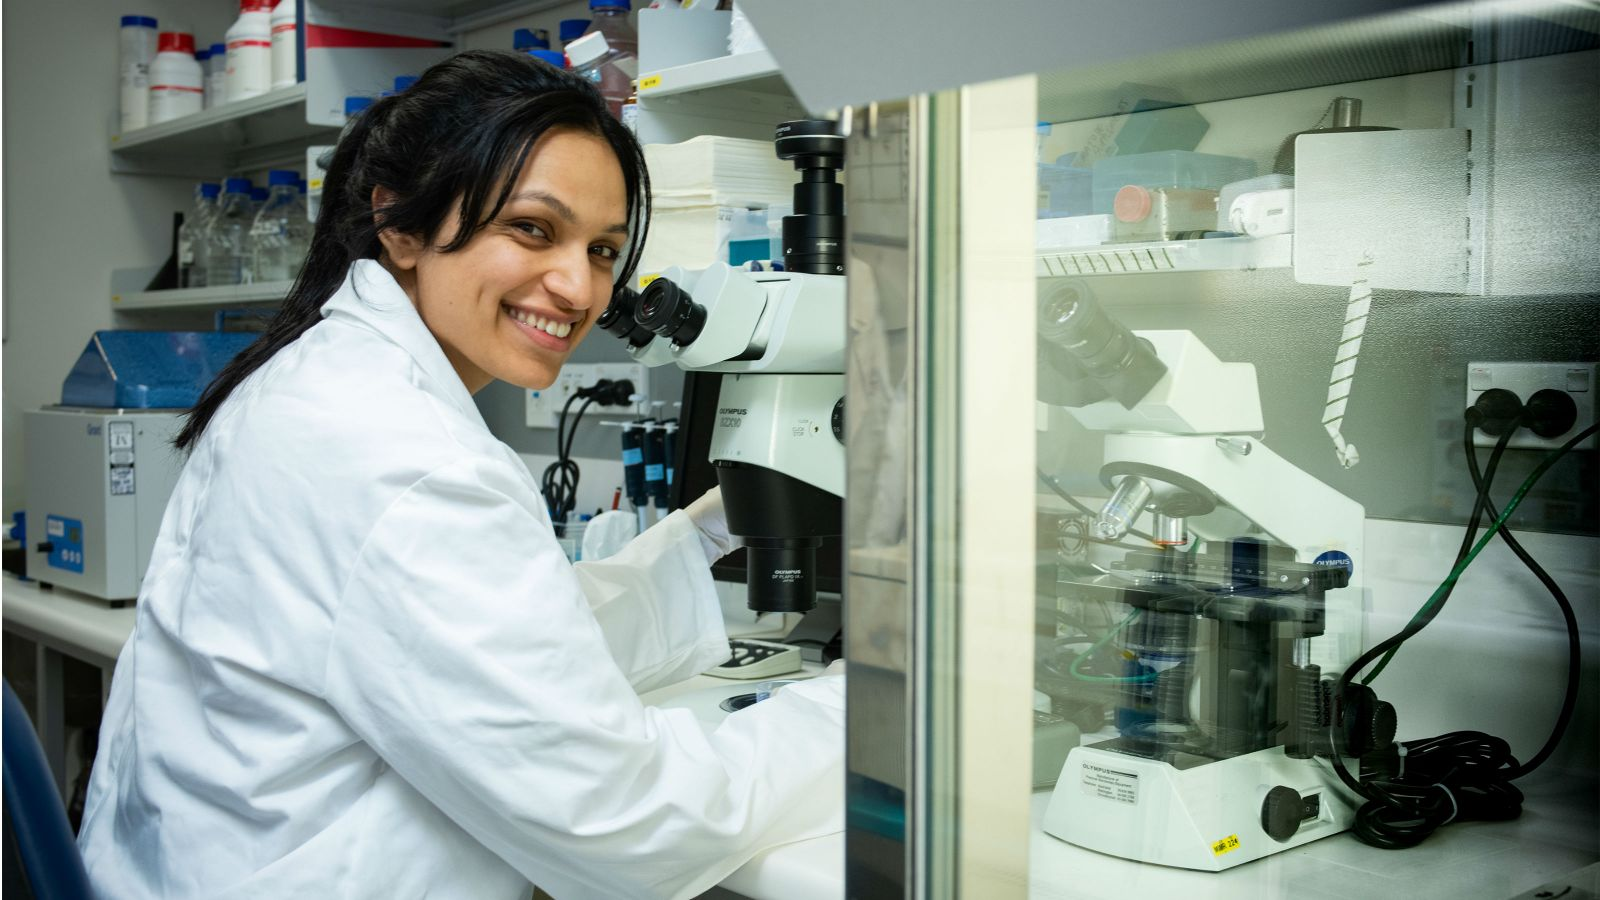 Palak, wearing a white lab coat, sits by a microscope.